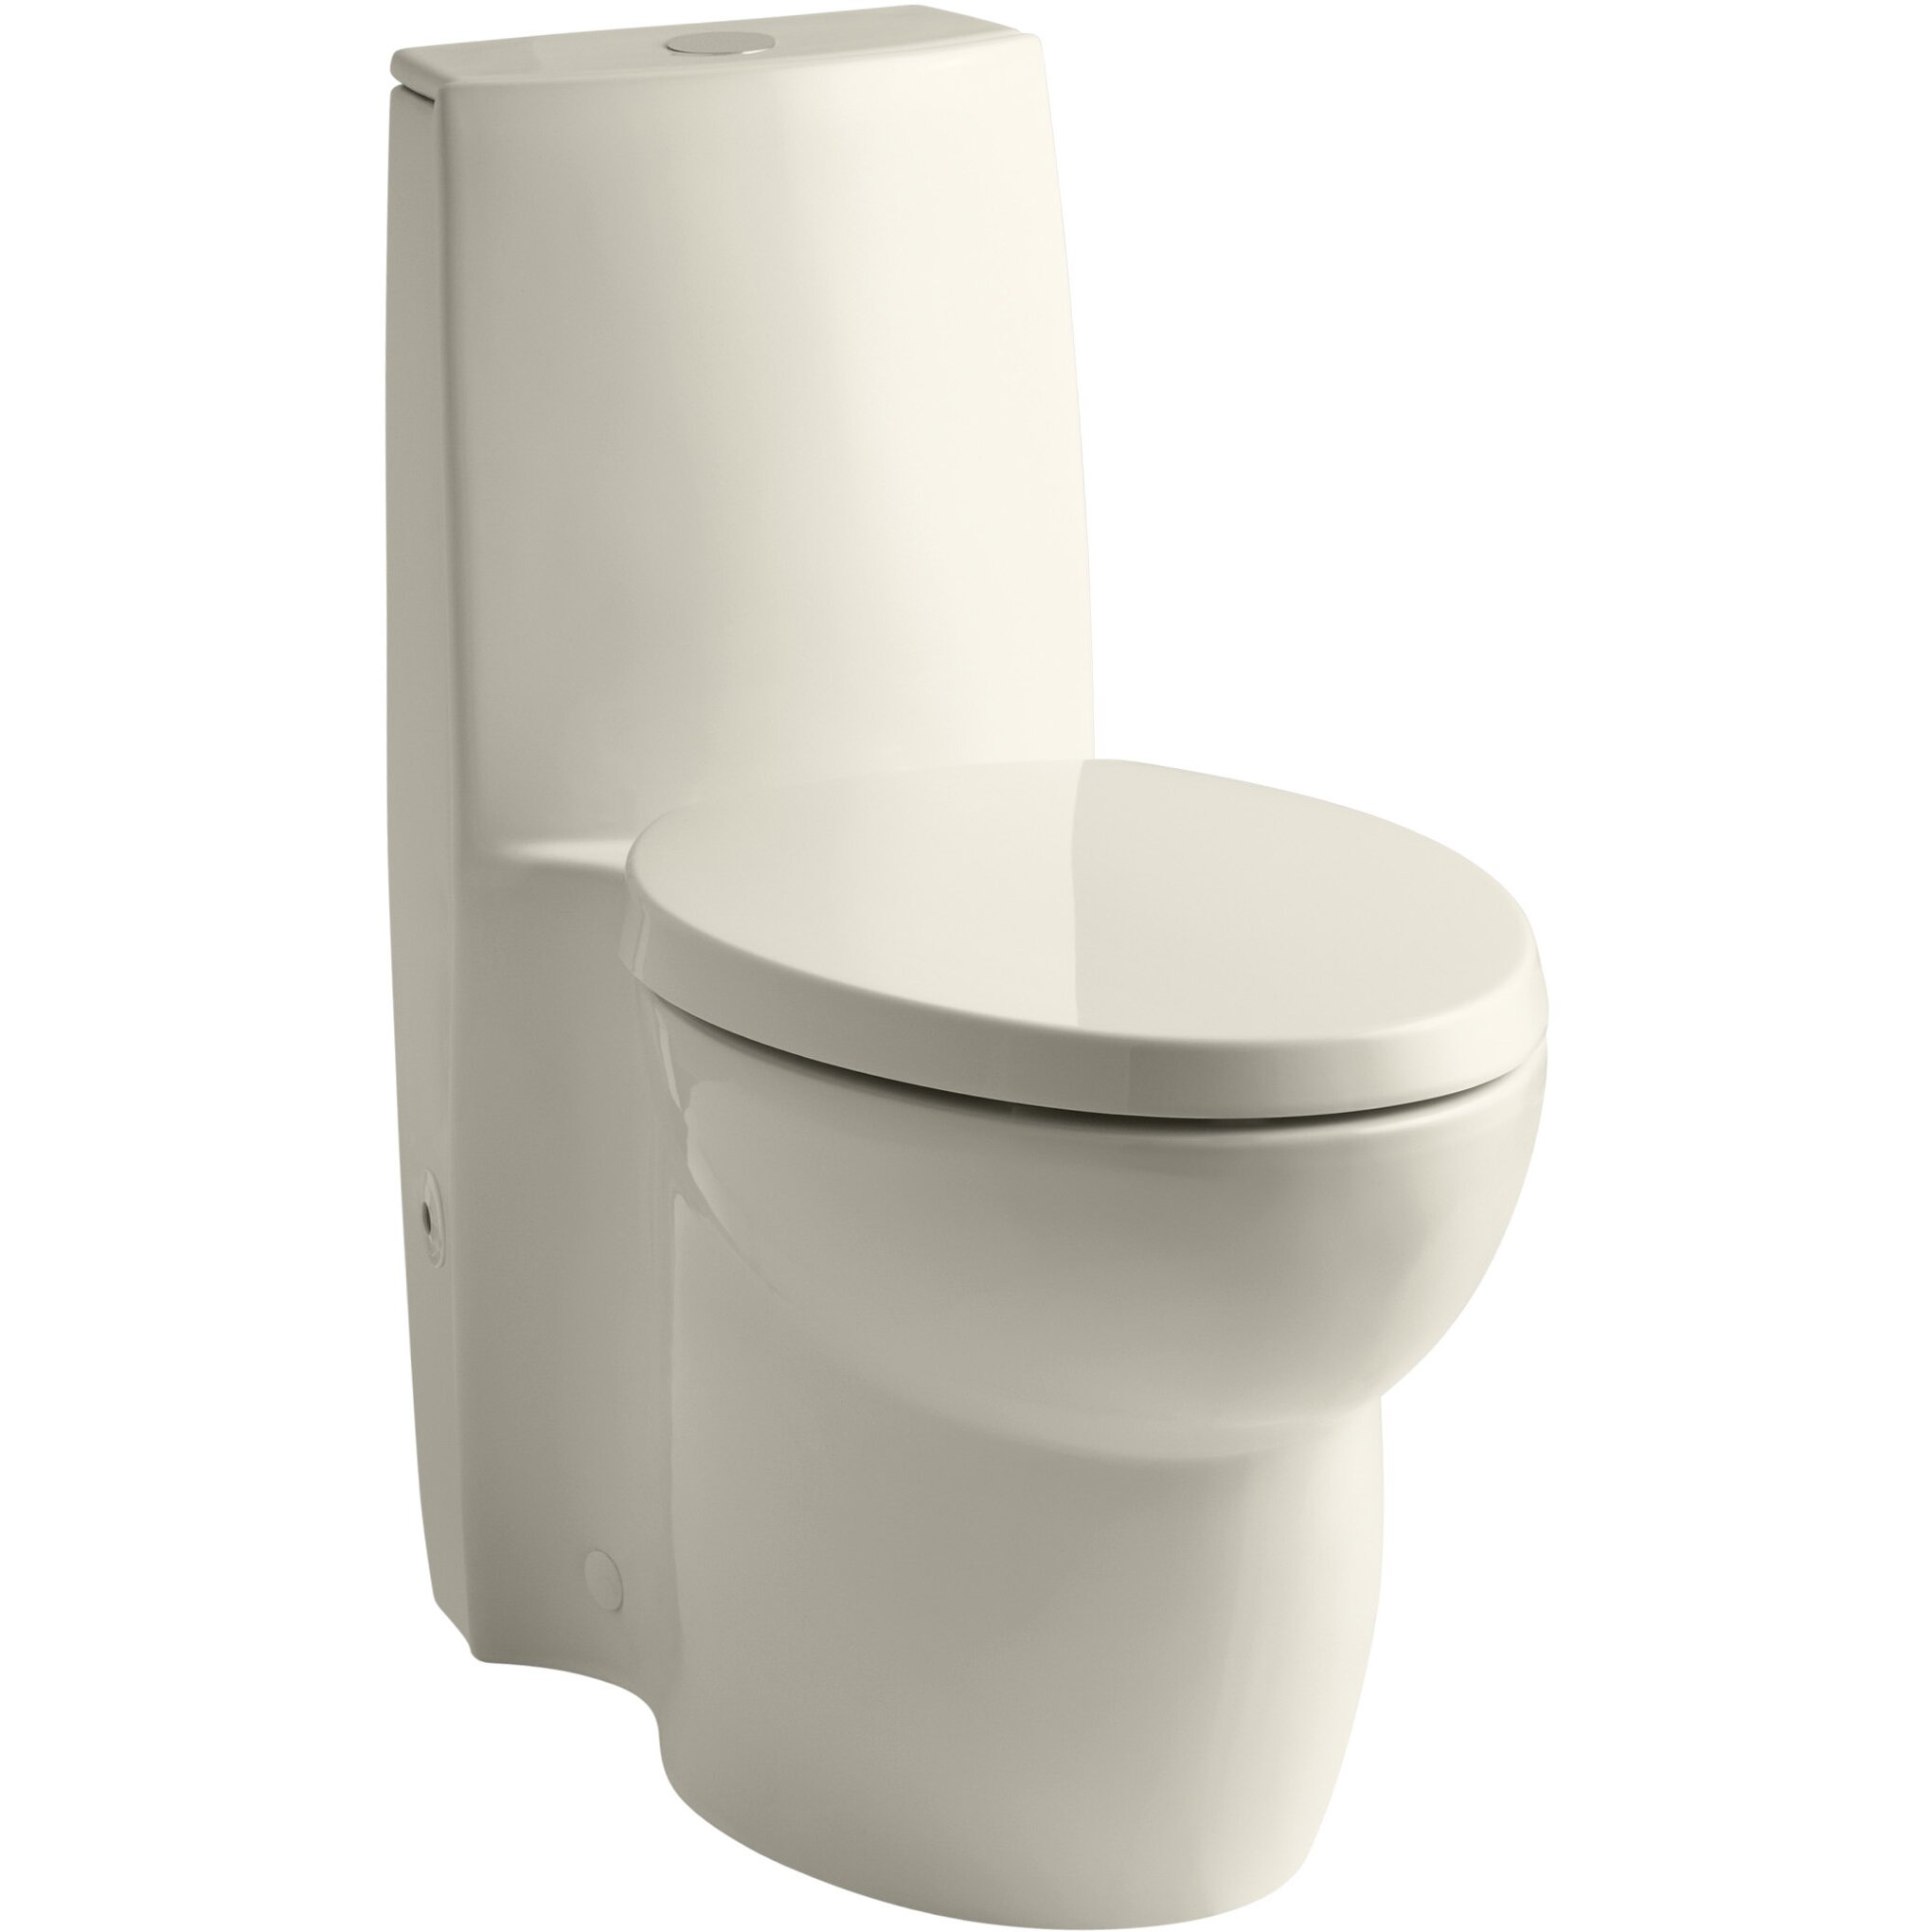 Kohler Saile Skirted One Piece Elongated Dual Flush Toilet